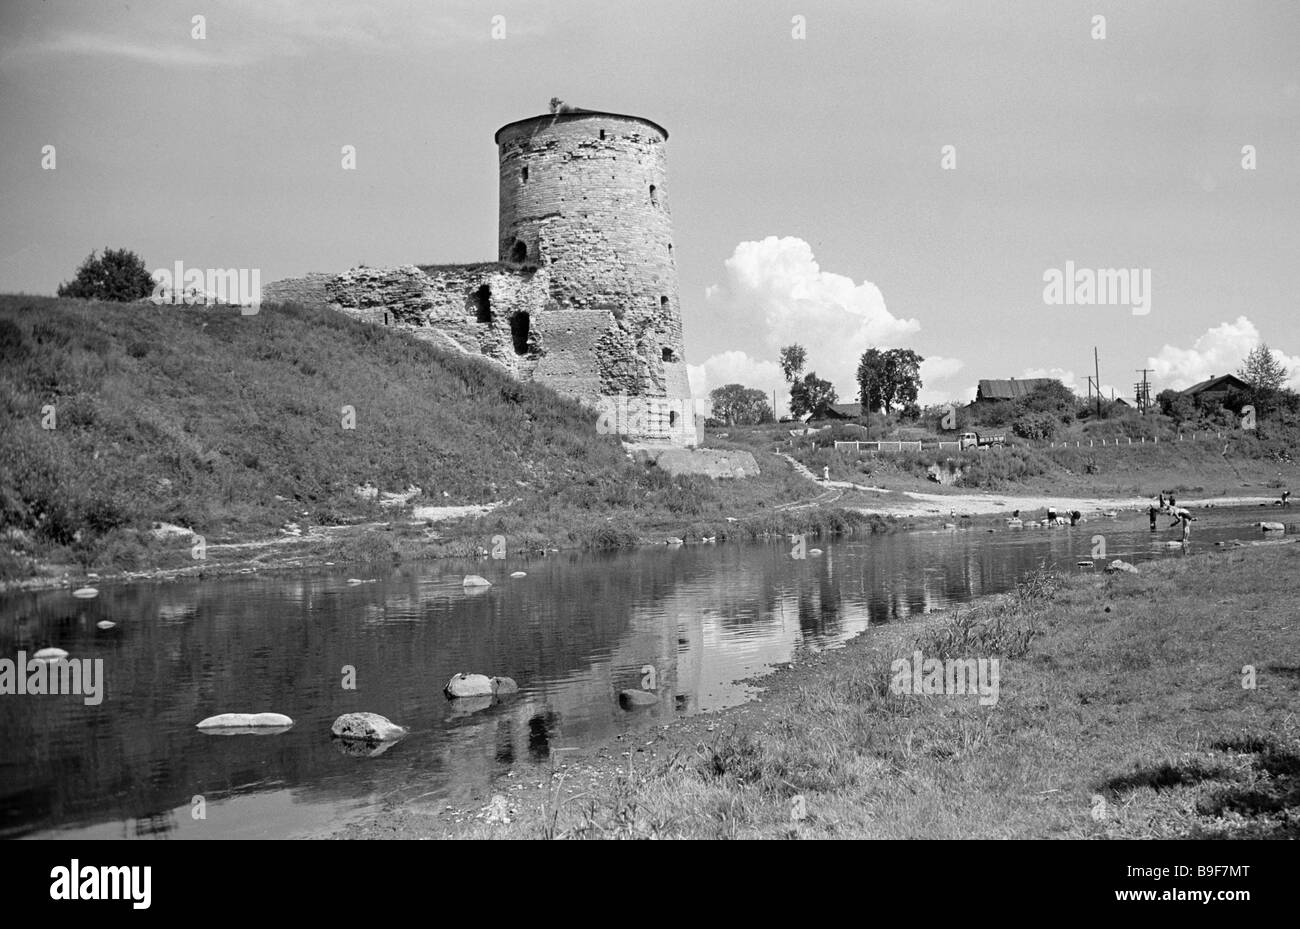 The sixteenth century Gremyachaya turret in the city of Pskov - Stock Image